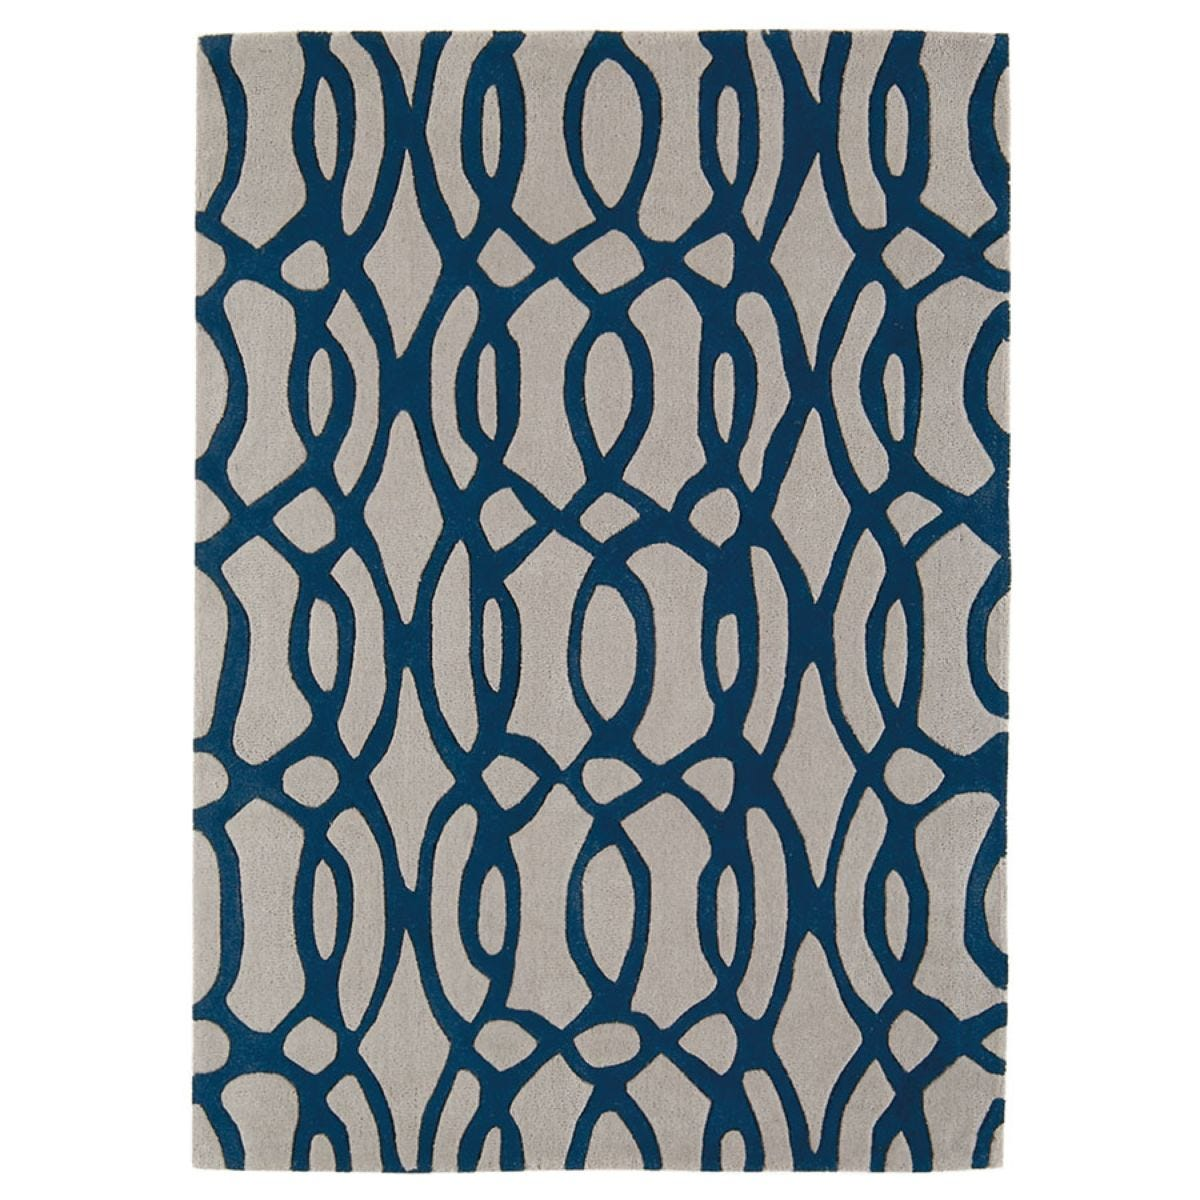 Asiatic Matrix Rug, 160 x 230cm - Blue